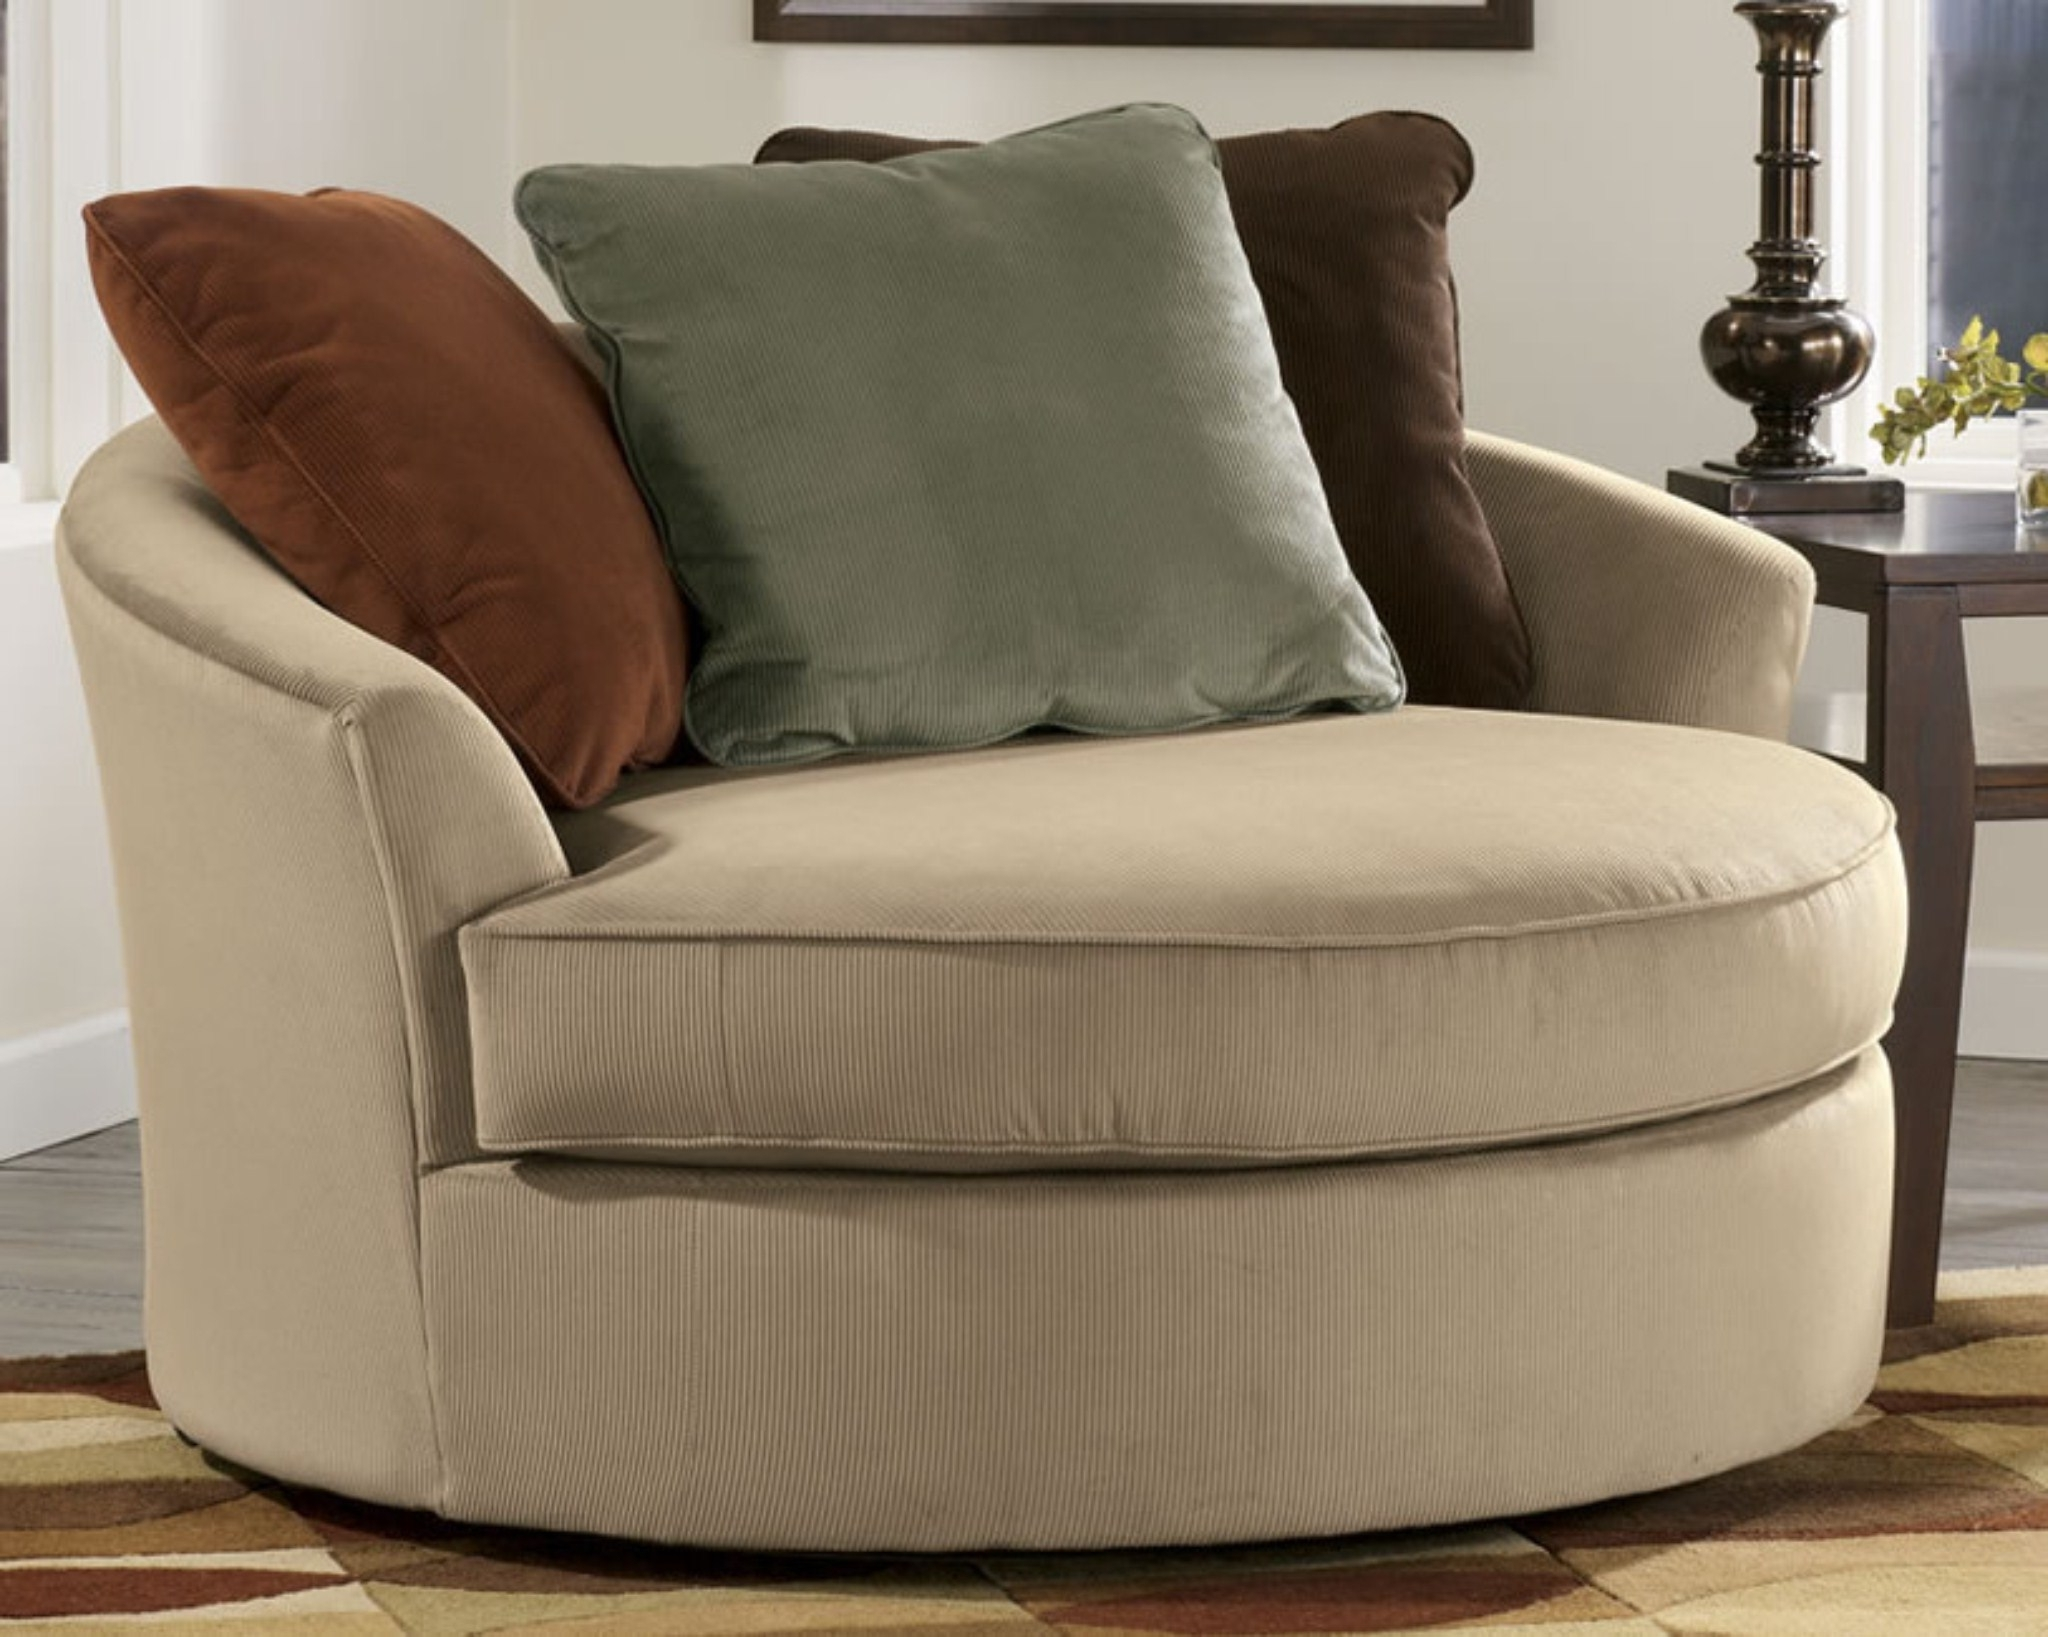 Round Swivel Sofa Chairs Intended For Latest Sofa : Luxury Round Swivel Sofa Chair Latest Large With Crescent (View 2 of 15)